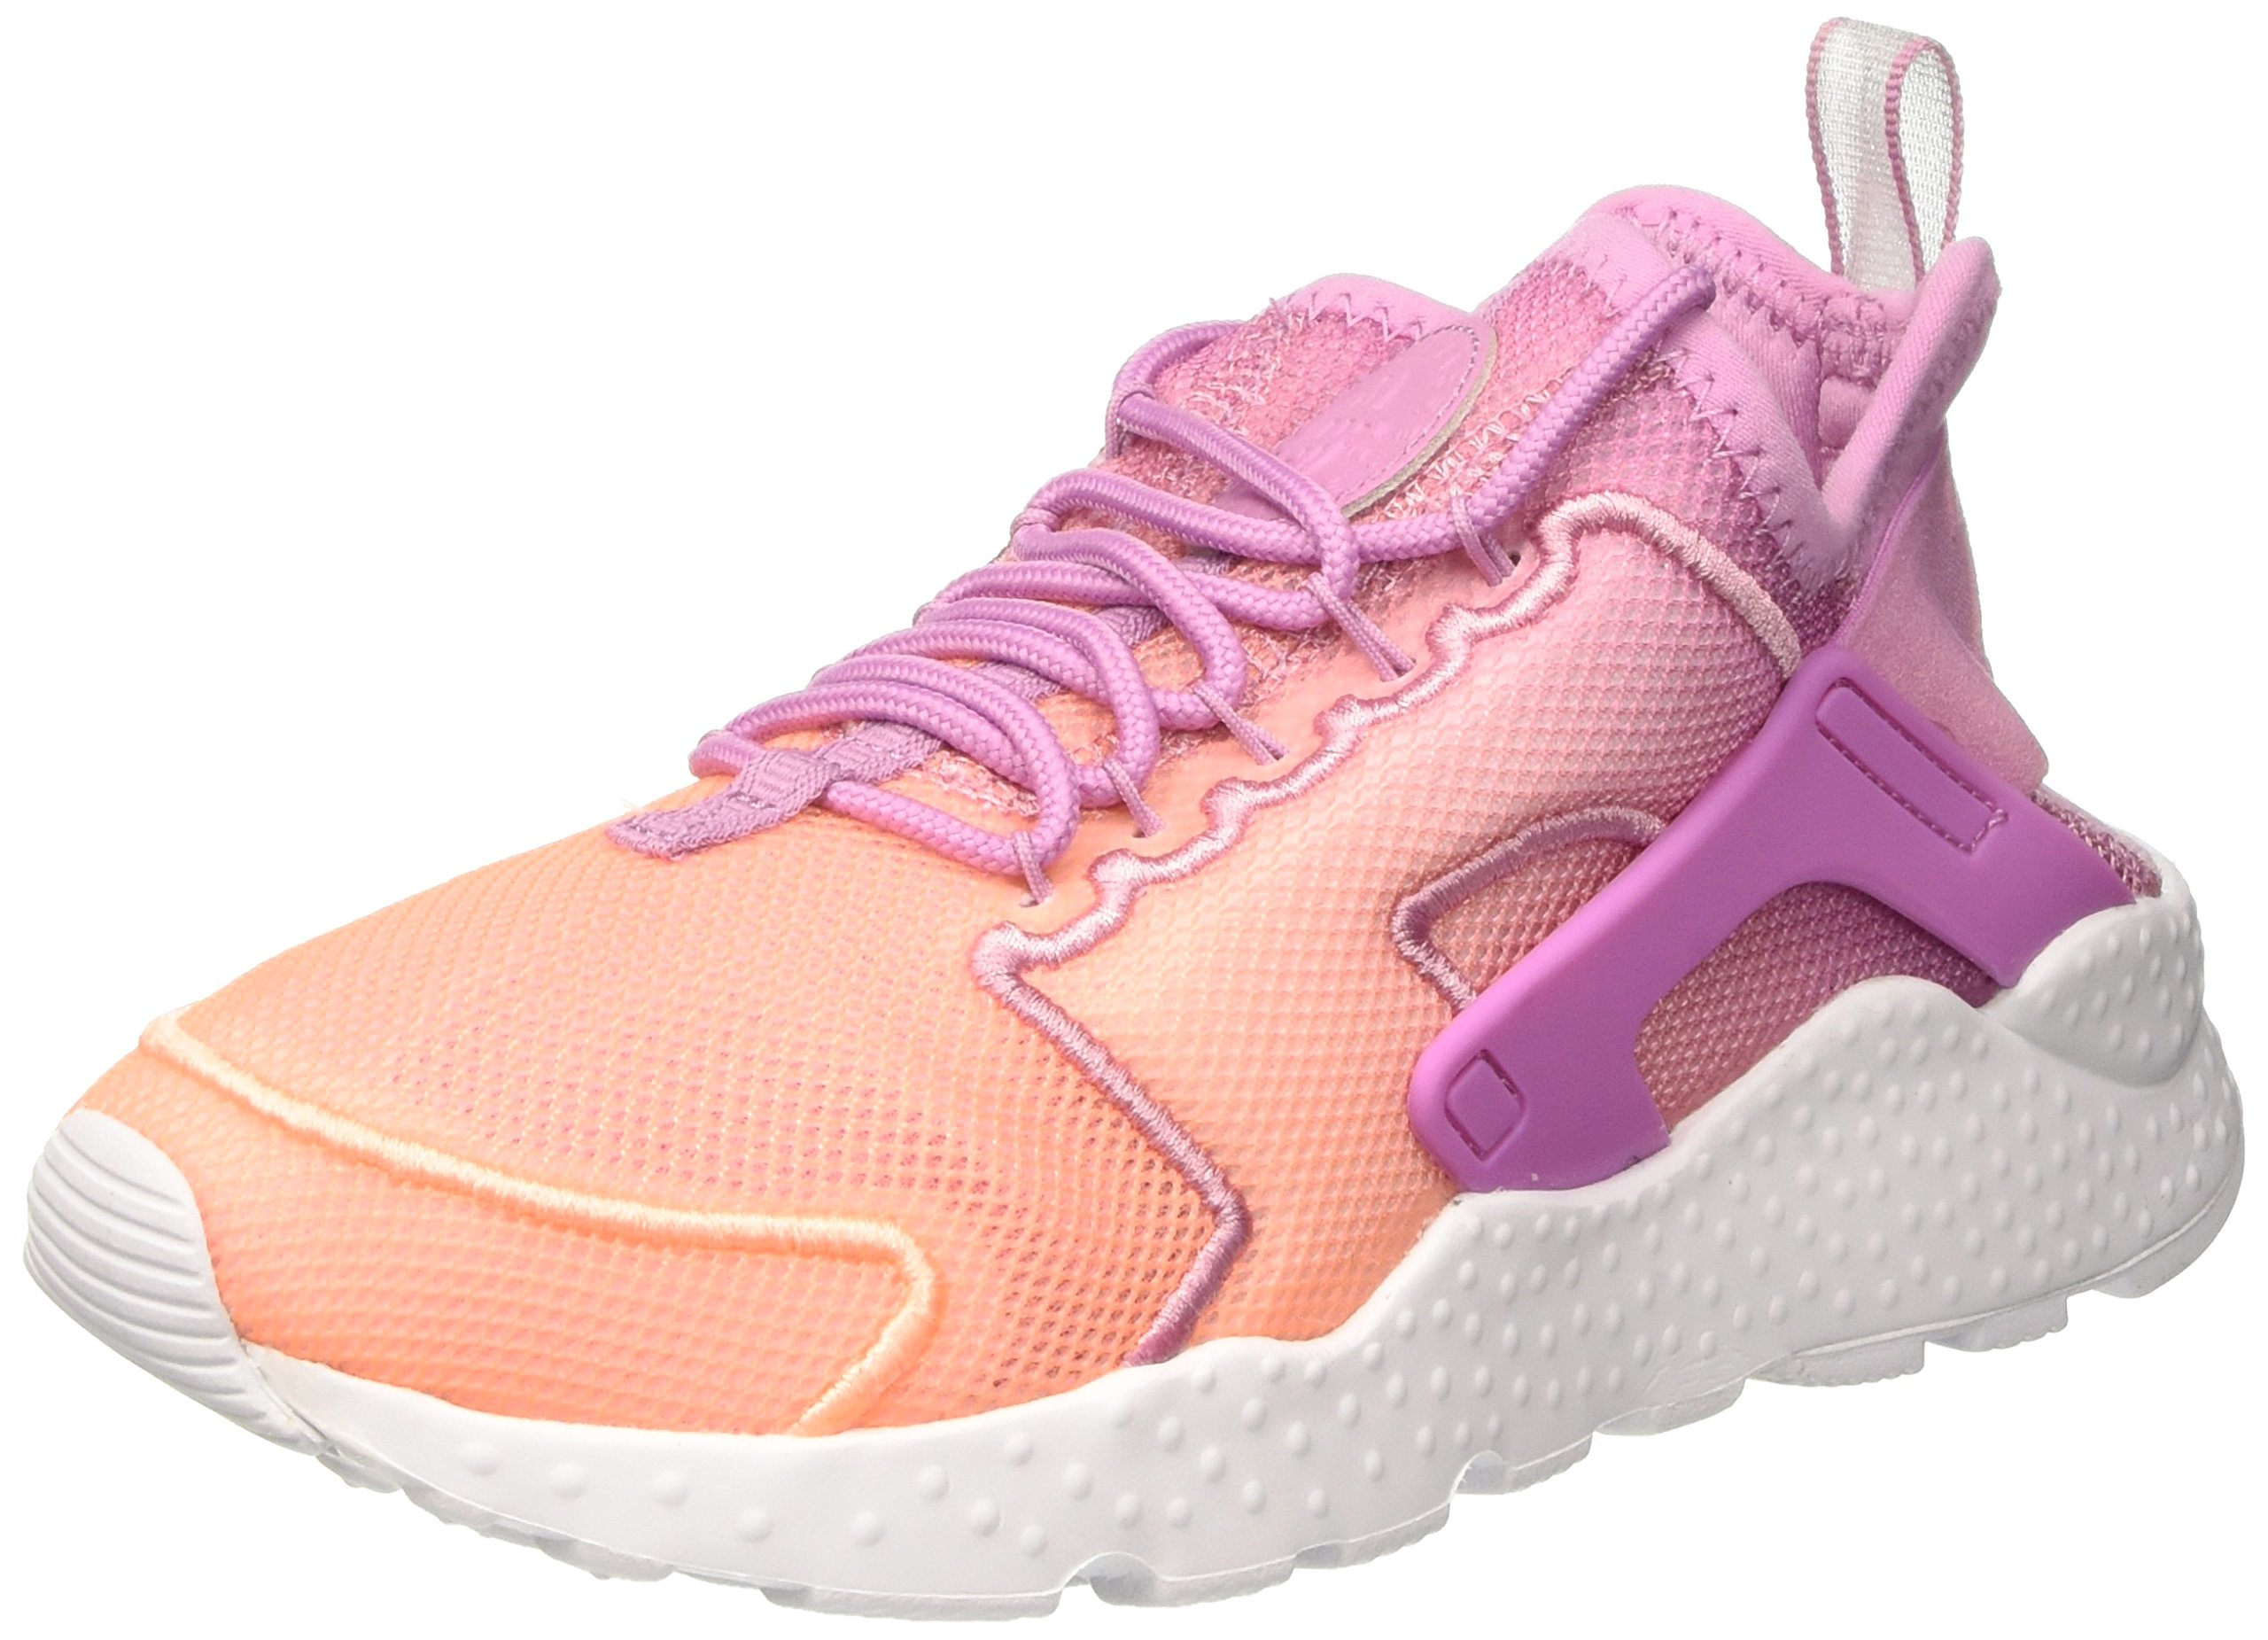 212c12ecdc979 Galleon - Nike Women's W Air Huarache Run Ultra BR, Orchid/Orchid-Sunset  Glow, 7 US